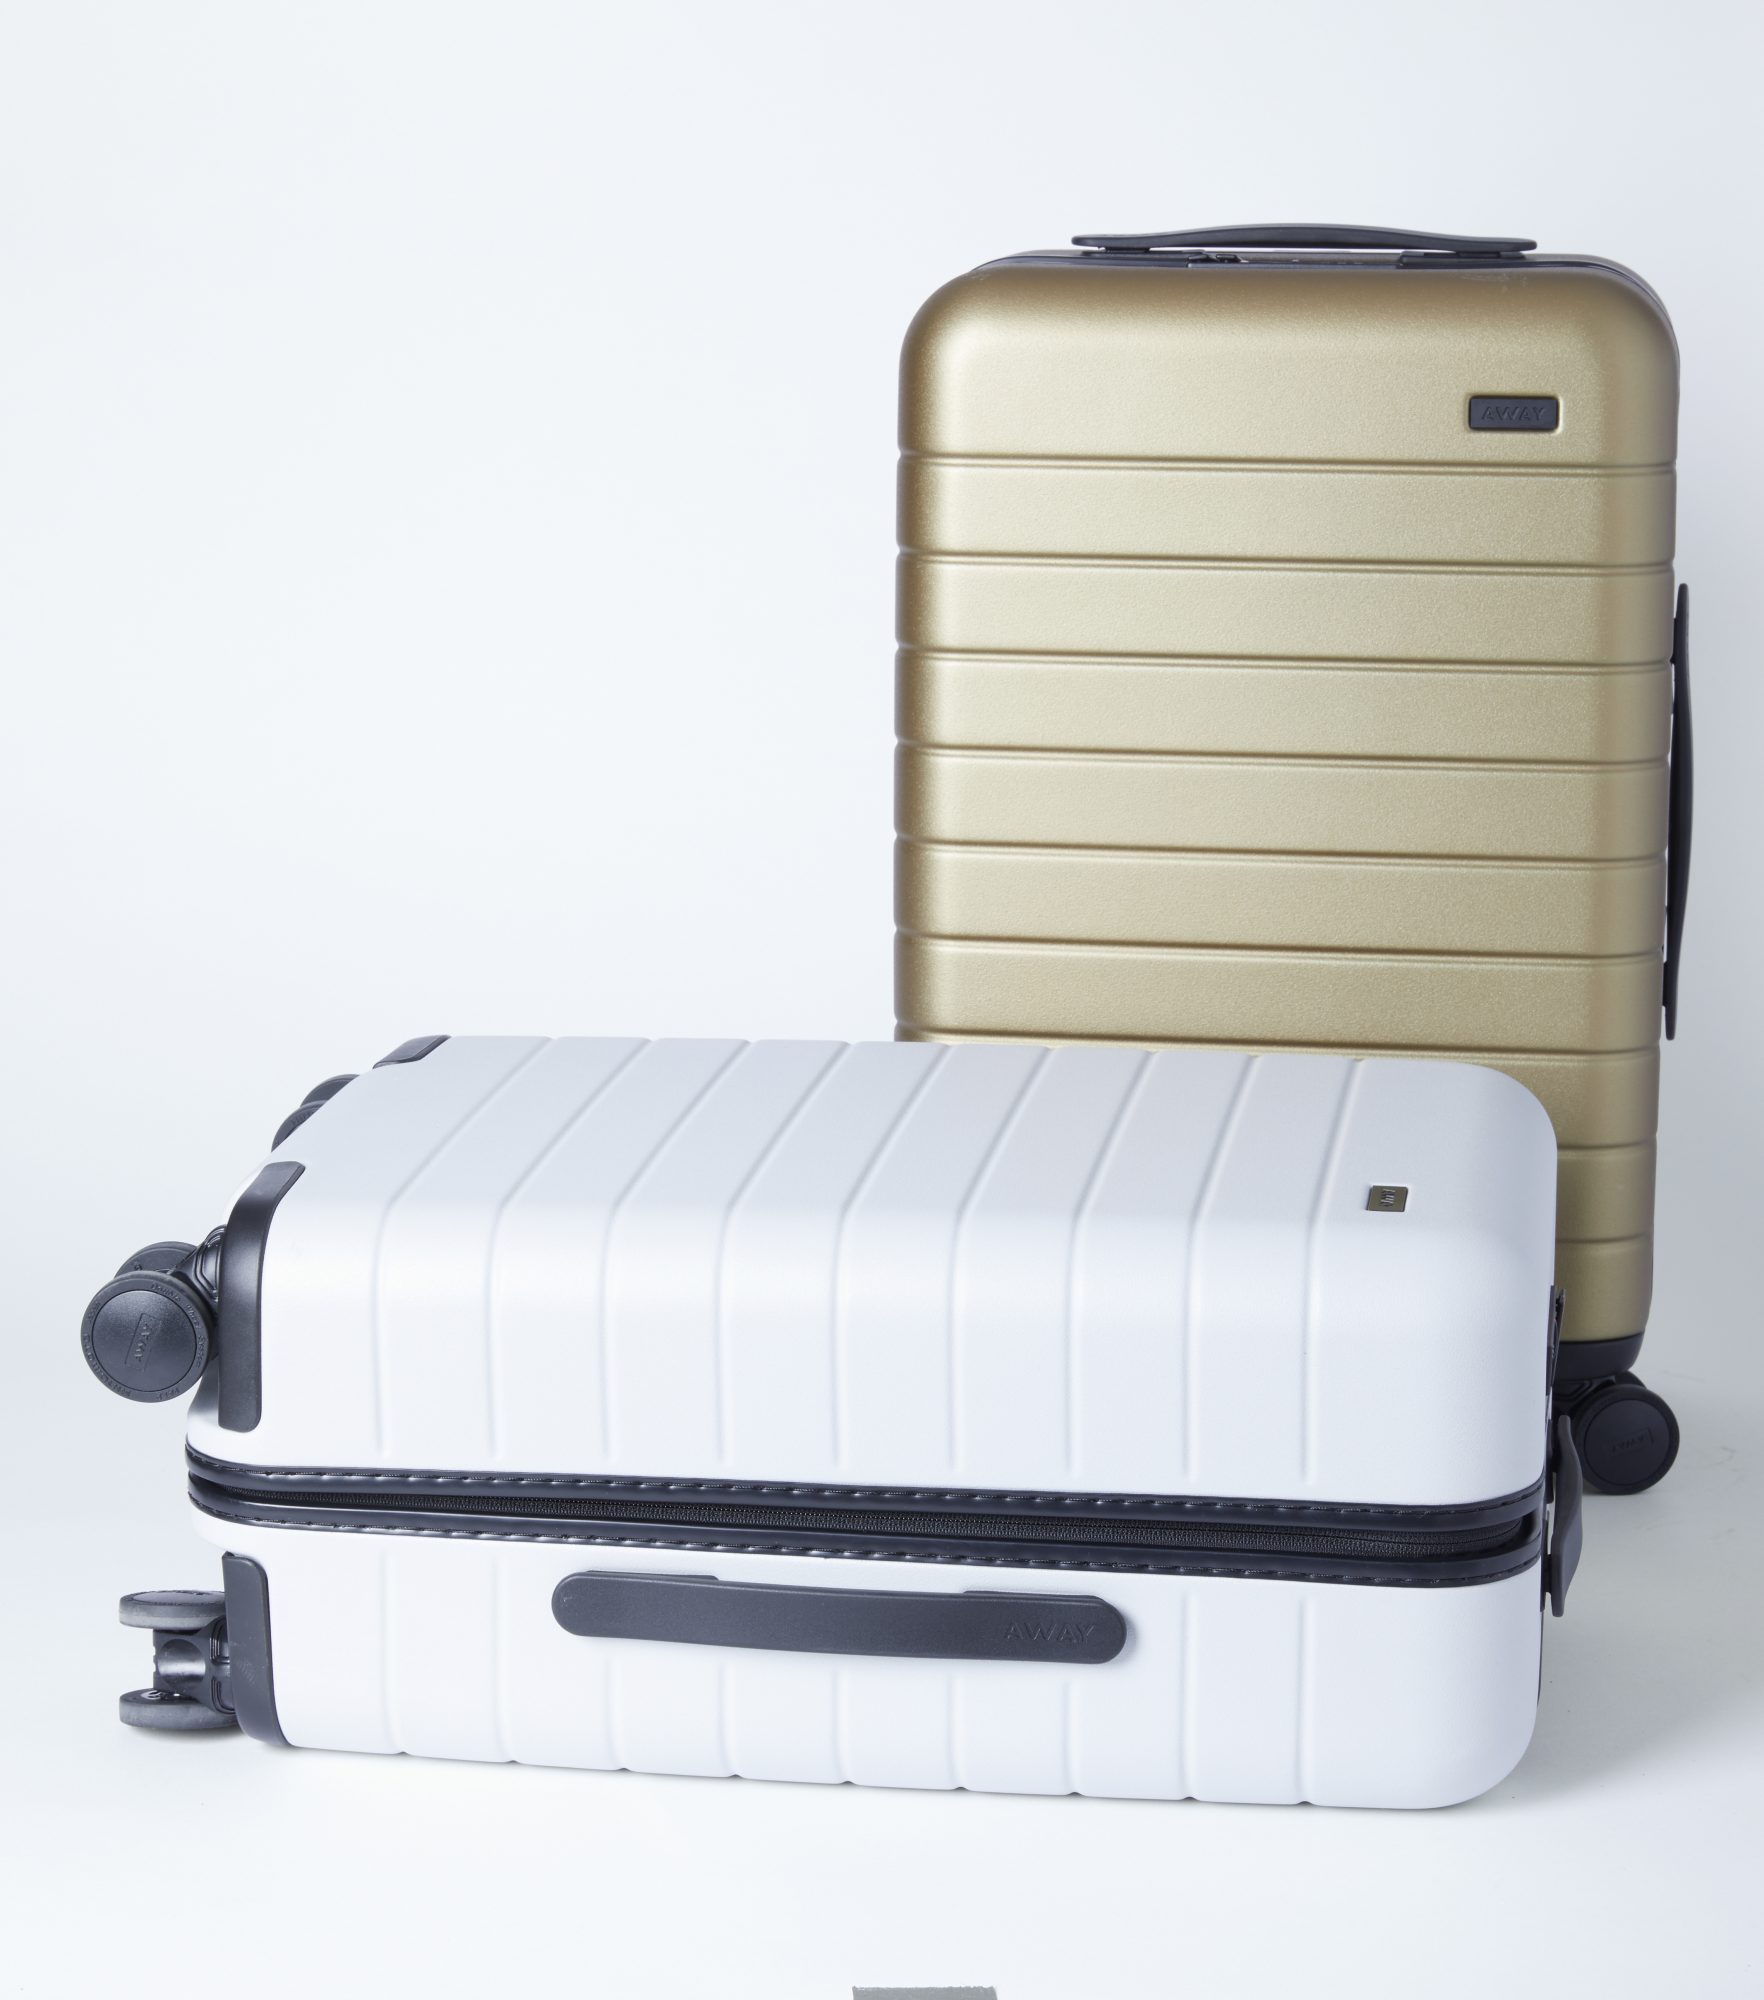 s-travel-suitcases-hl17-0291